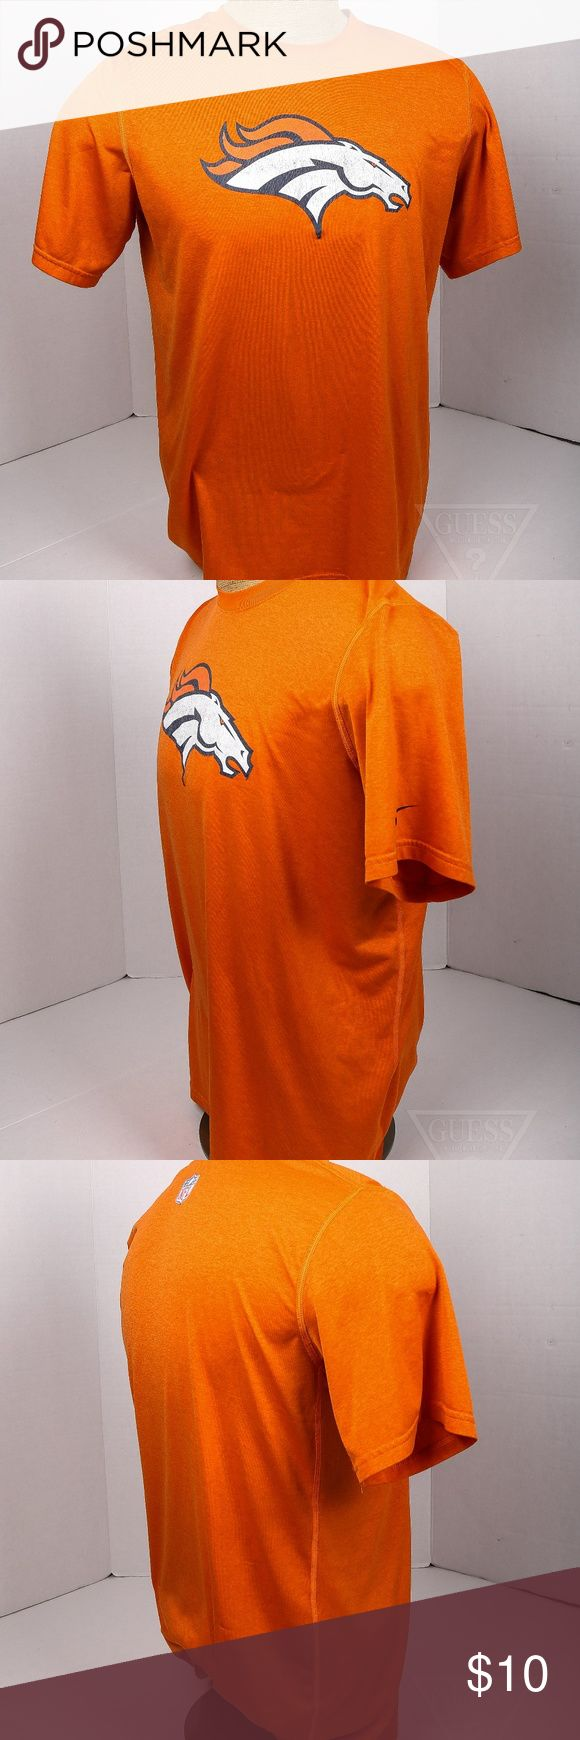 Men's L Orange Dri Fit Denver Broncos t shirt Men's L Orange Dri Fit Denver Broncos t shirt. Logos have some wear and fade. priced accordingly. NFL Shirts Tees - Short Sleeve